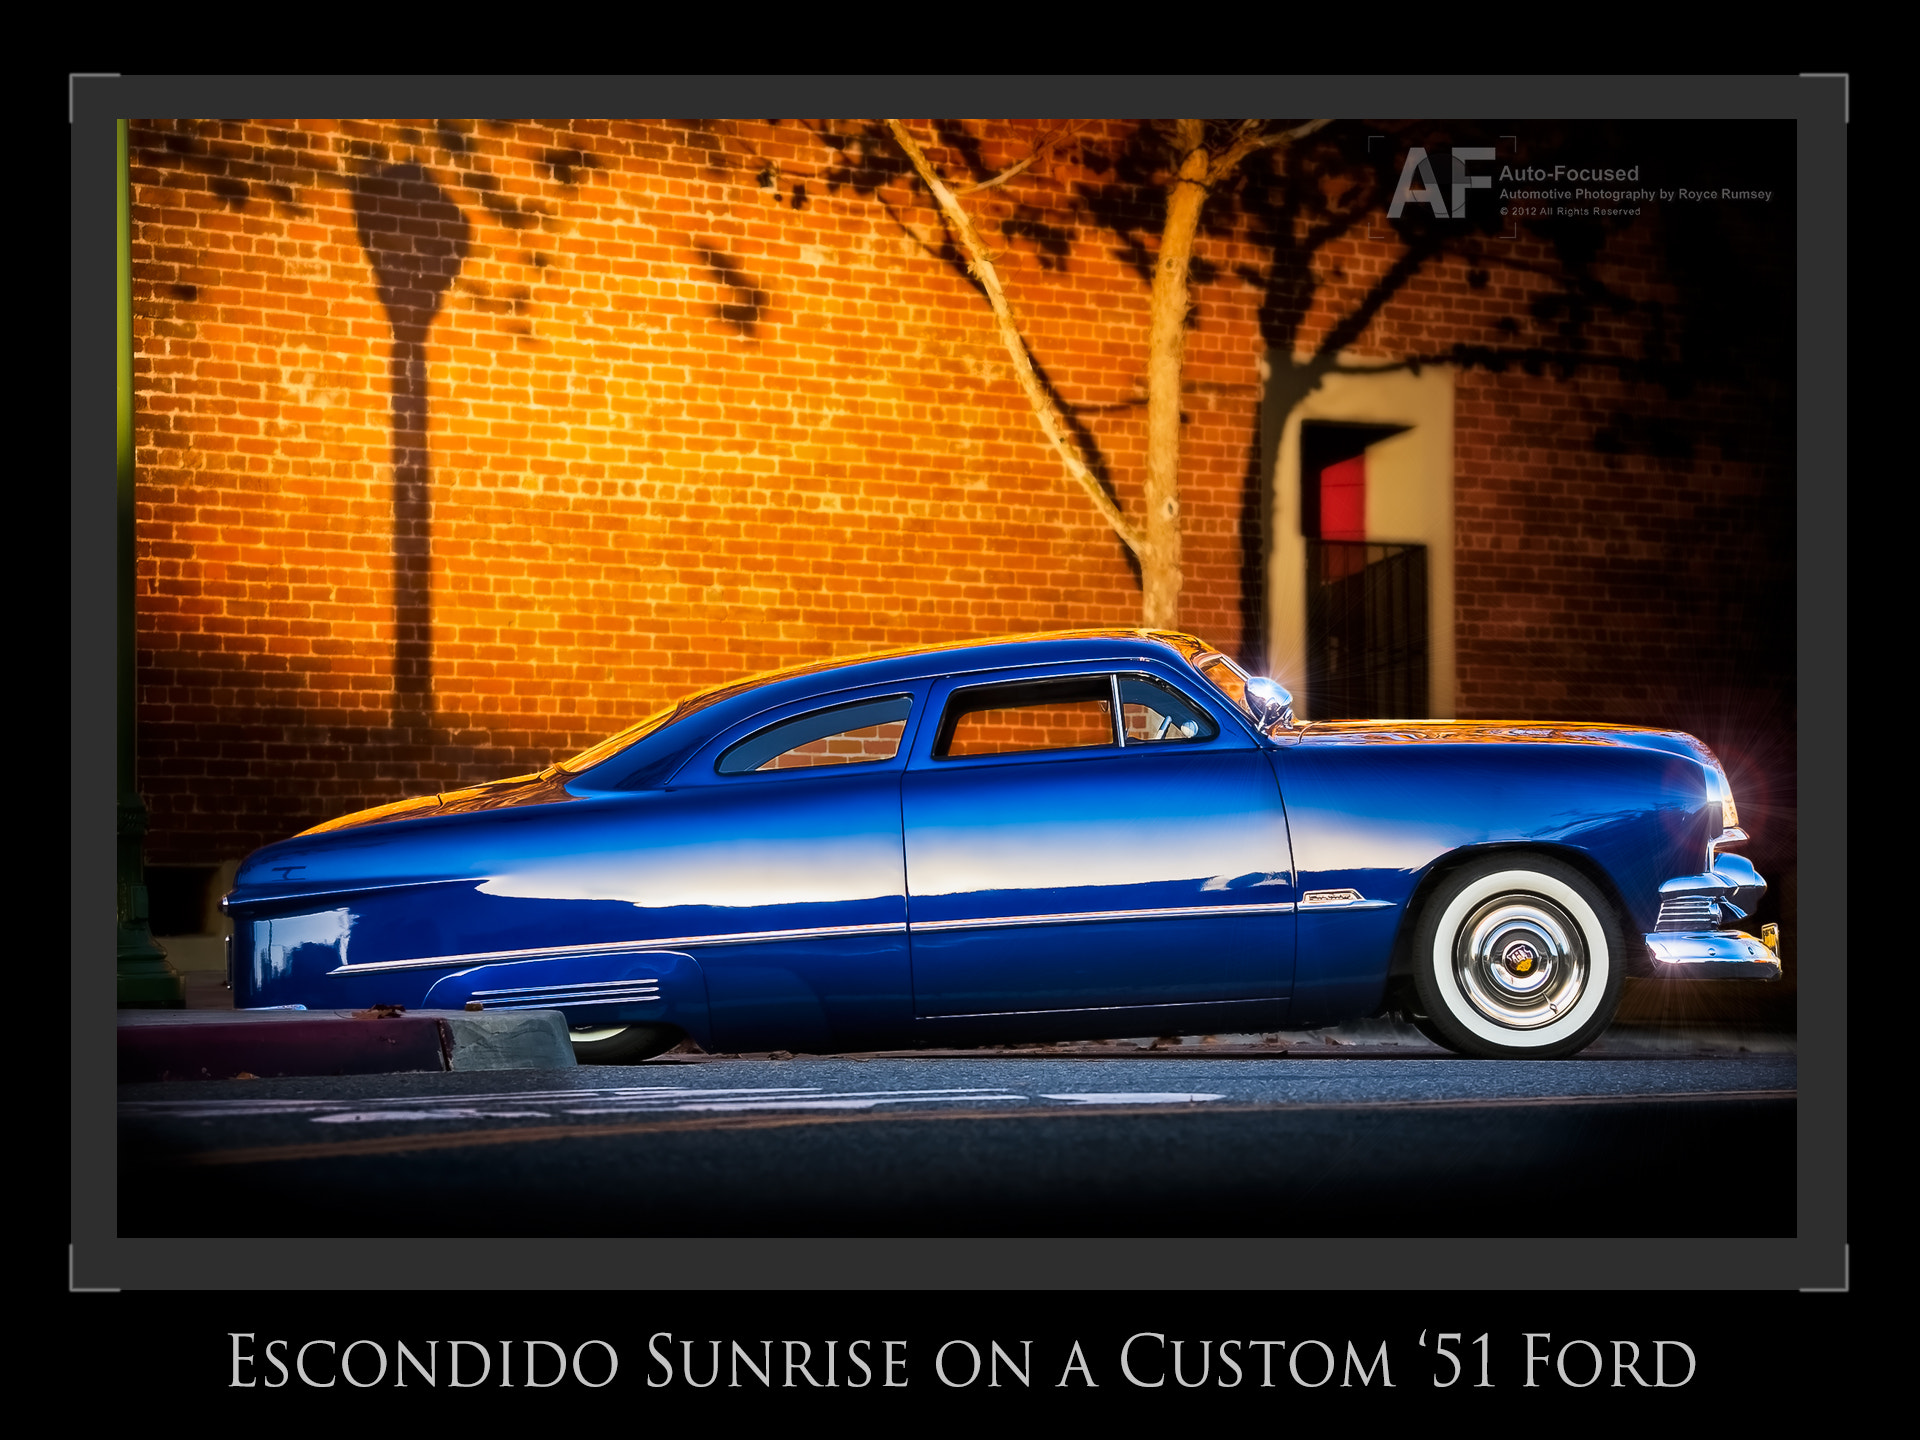 Photograph Custom '51 Ford at dawn in Escondido by Royce Rumsey on 500px